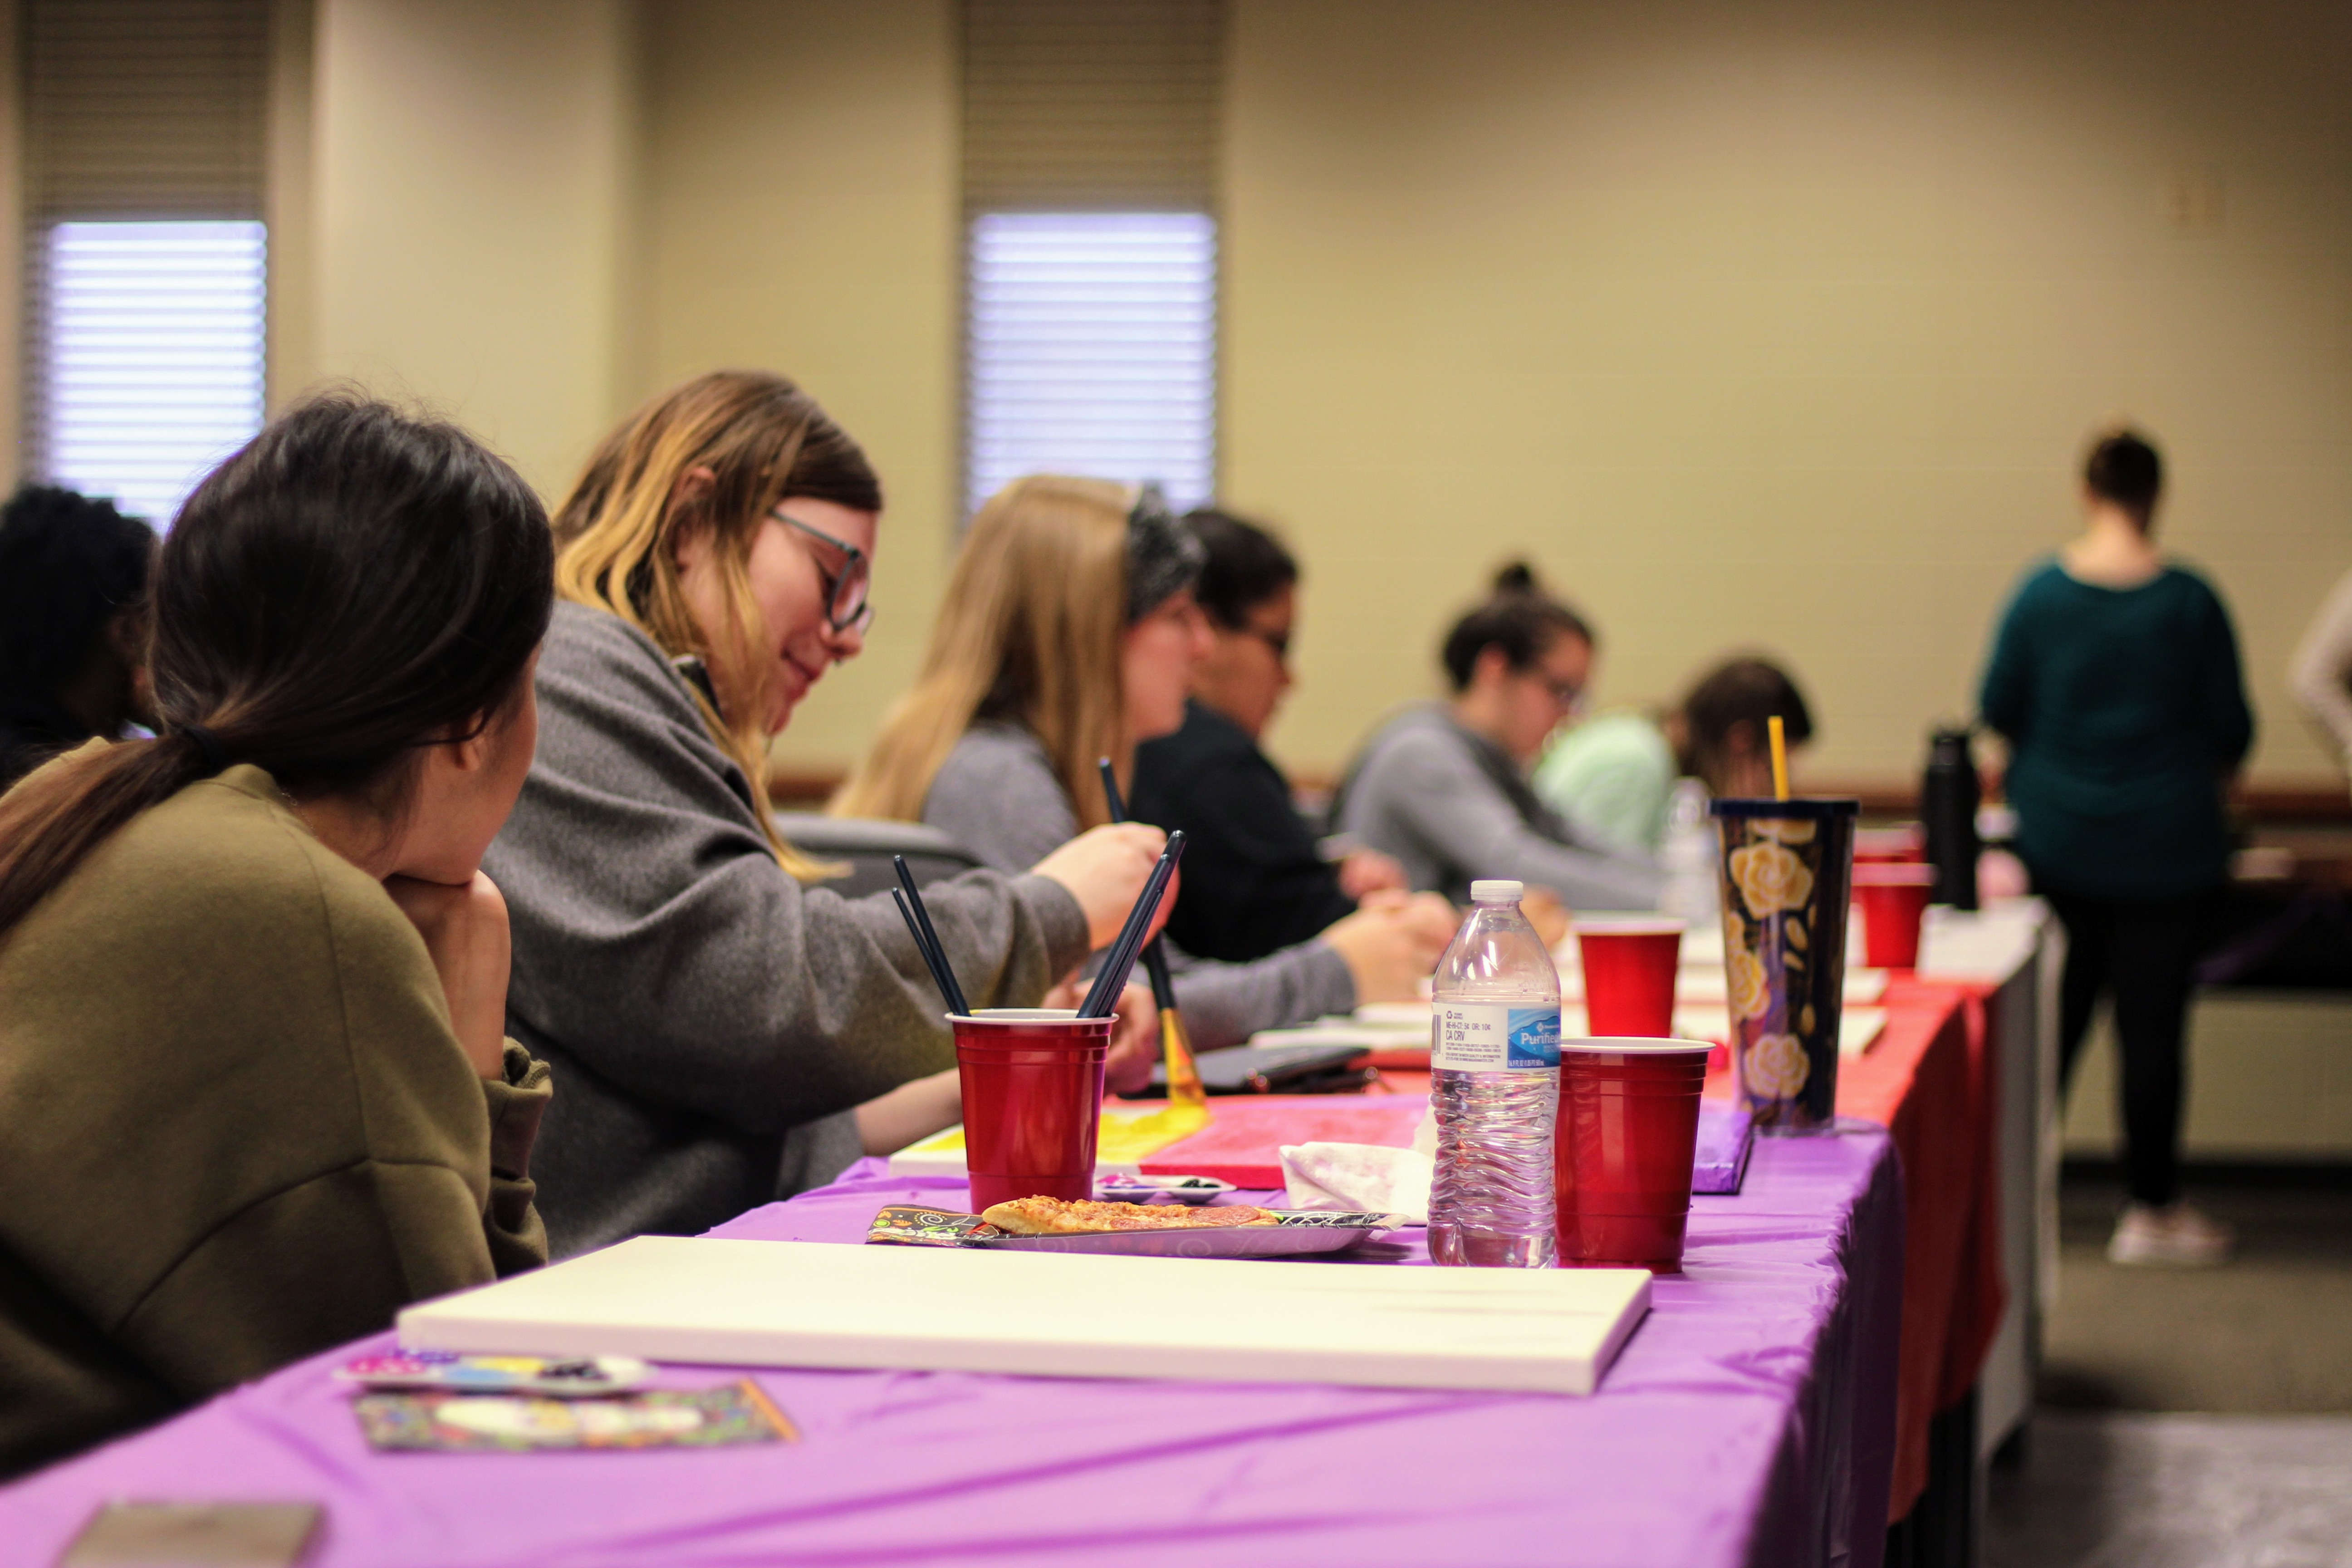 Day of the Dead painting event emphasizes crafts, accessibility – – DIY Adopt